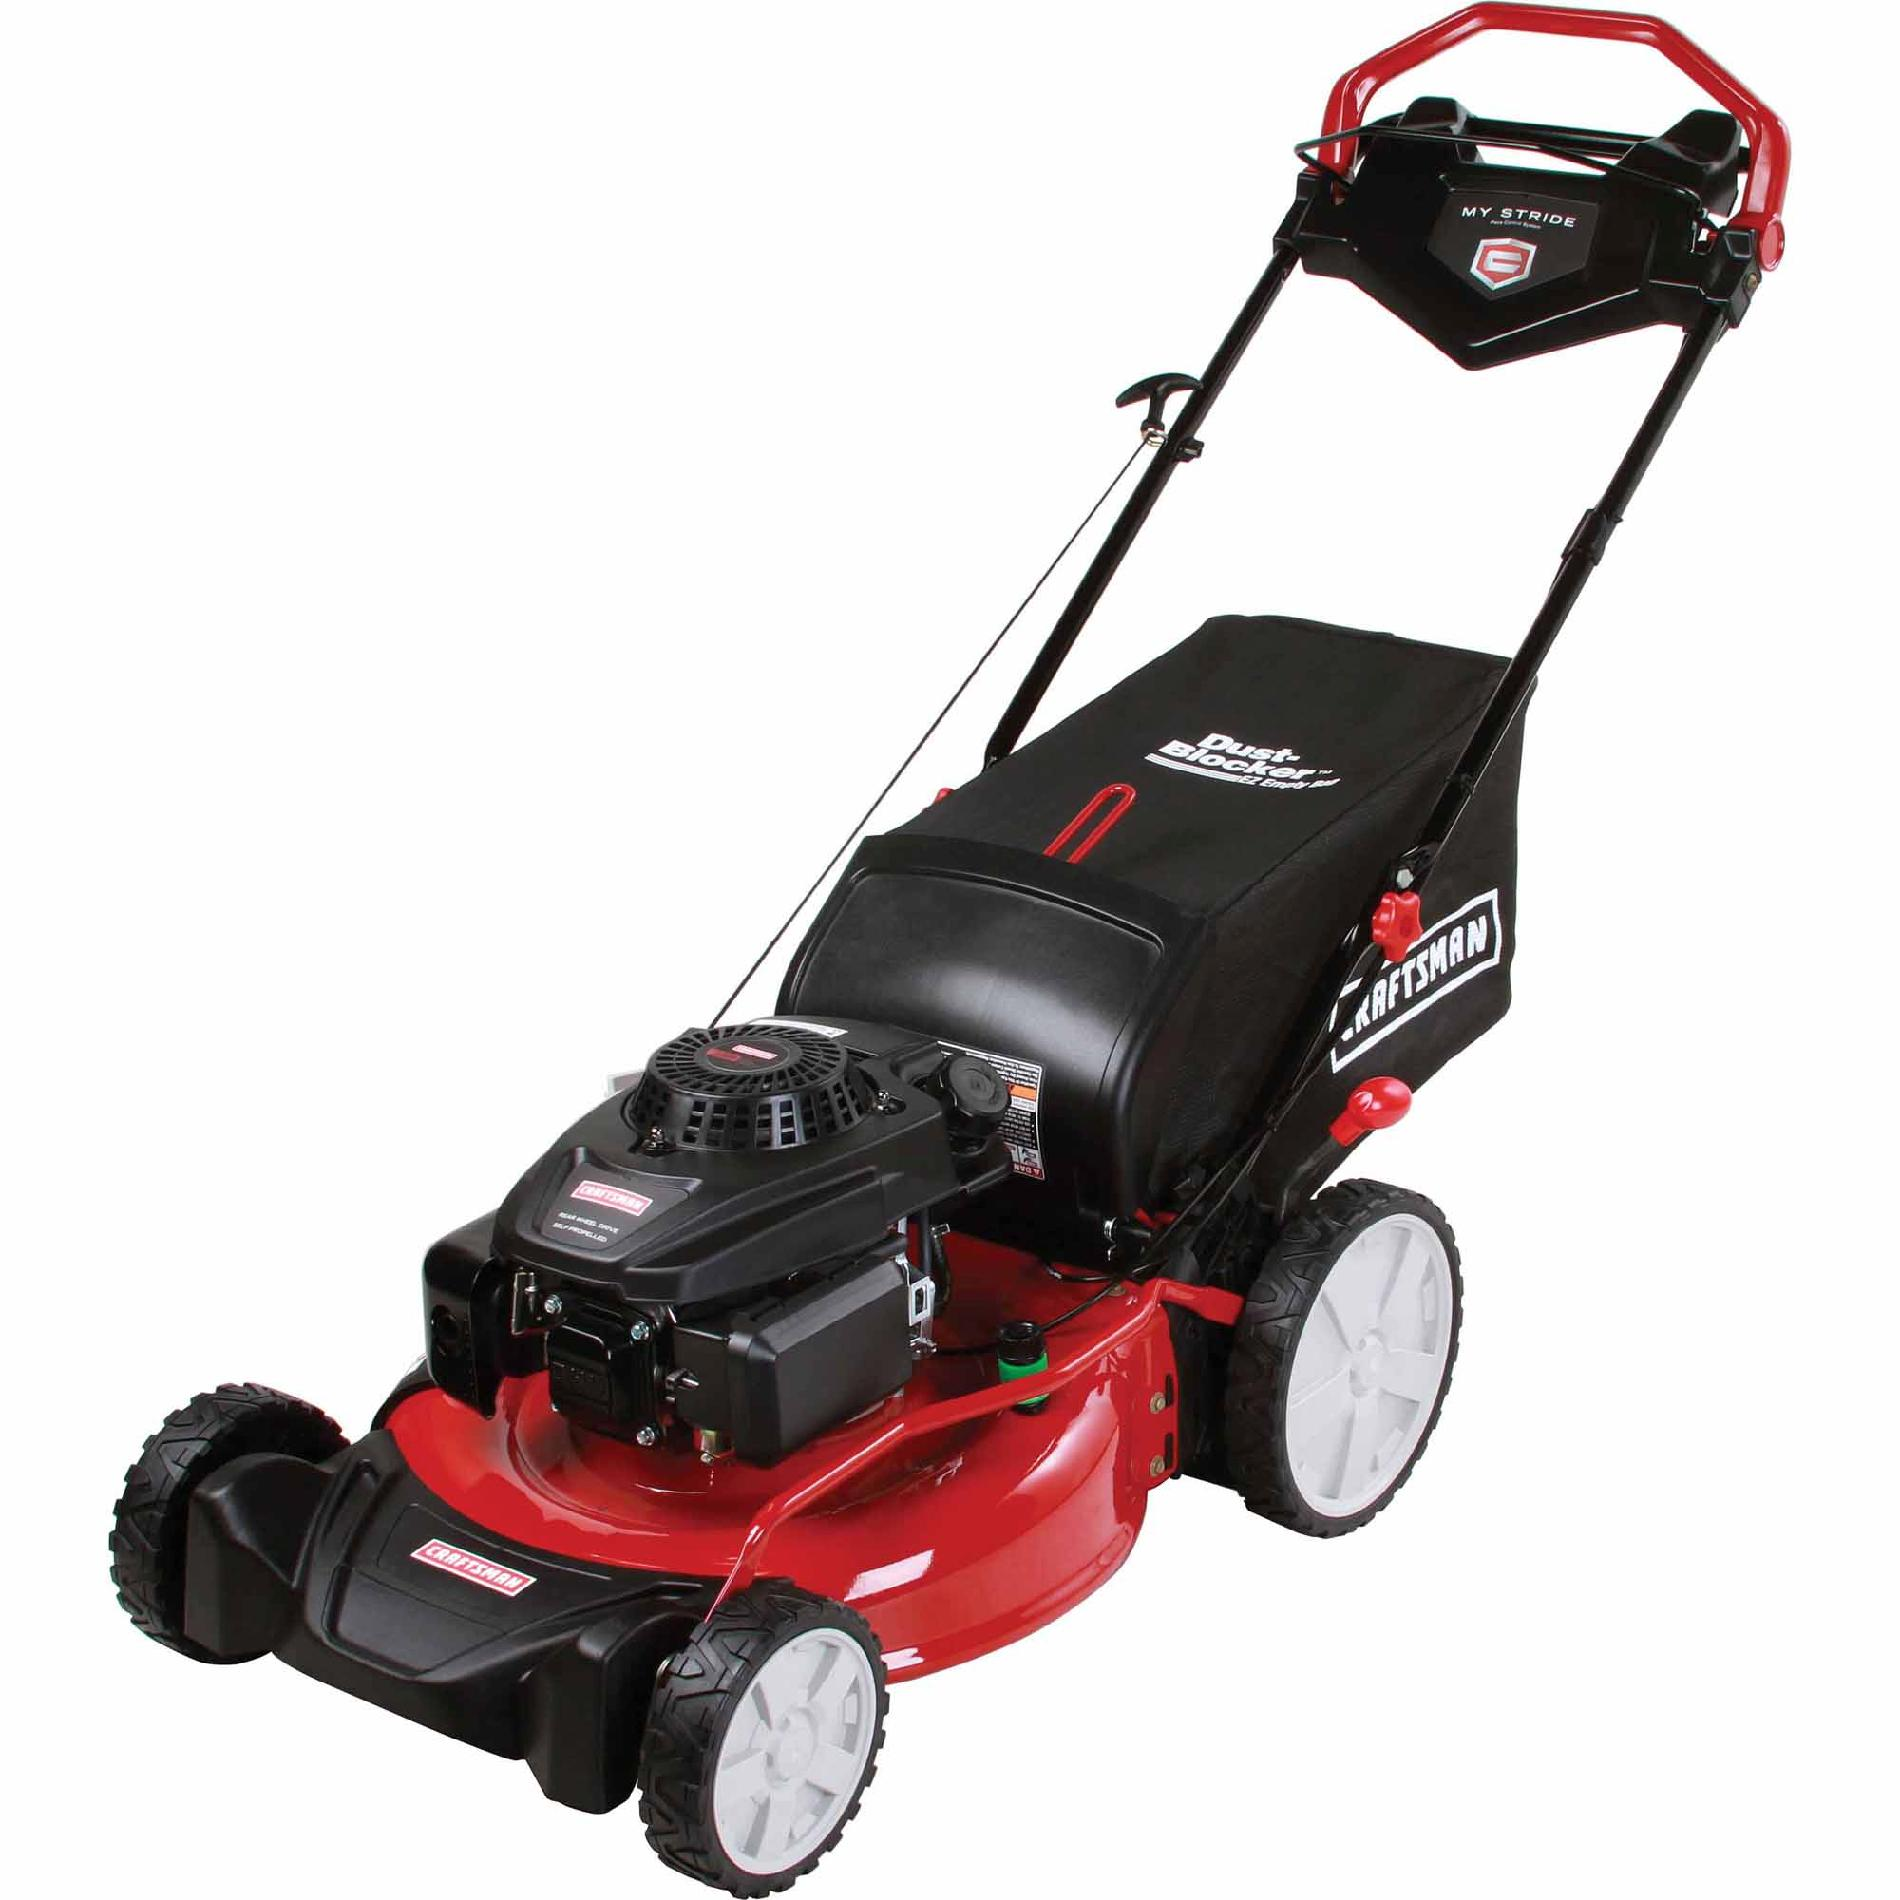 "Craftsman 21"" 159cc OHV Craftsman Engine, My Stride Rear Drive Self-Propelled Lawn Mower"